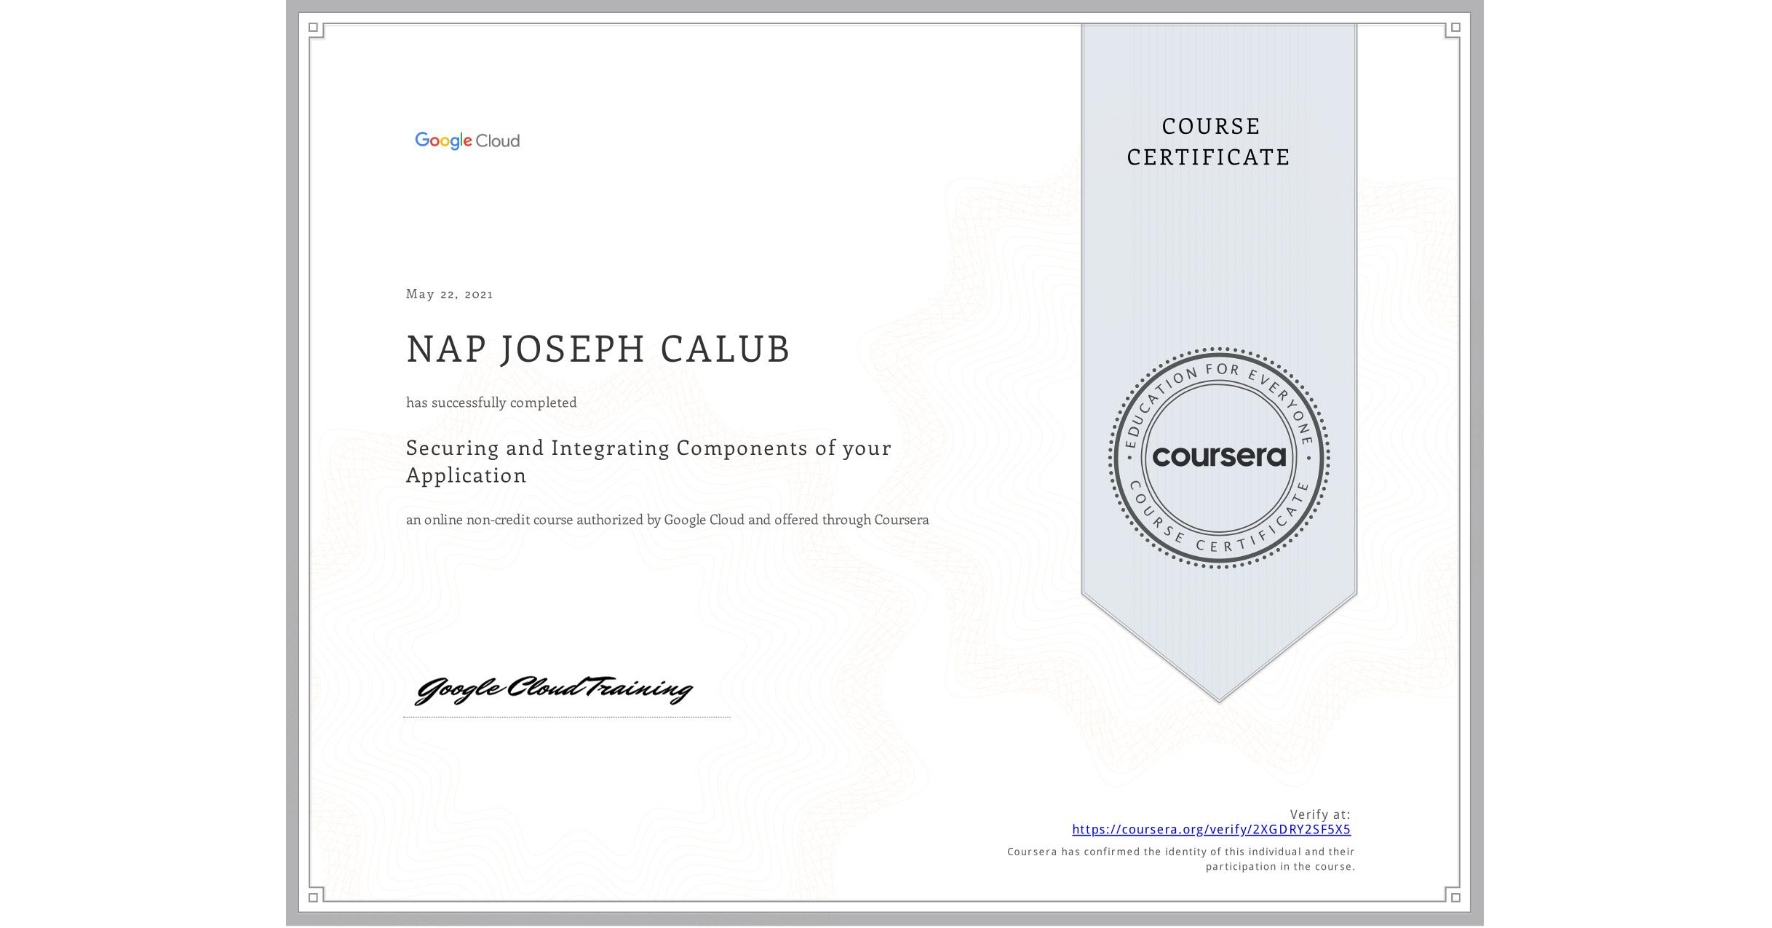 View certificate for NAP JOSEPH  CALUB, Securing and Integrating Components of your Application, an online non-credit course authorized by Google Cloud and offered through Coursera